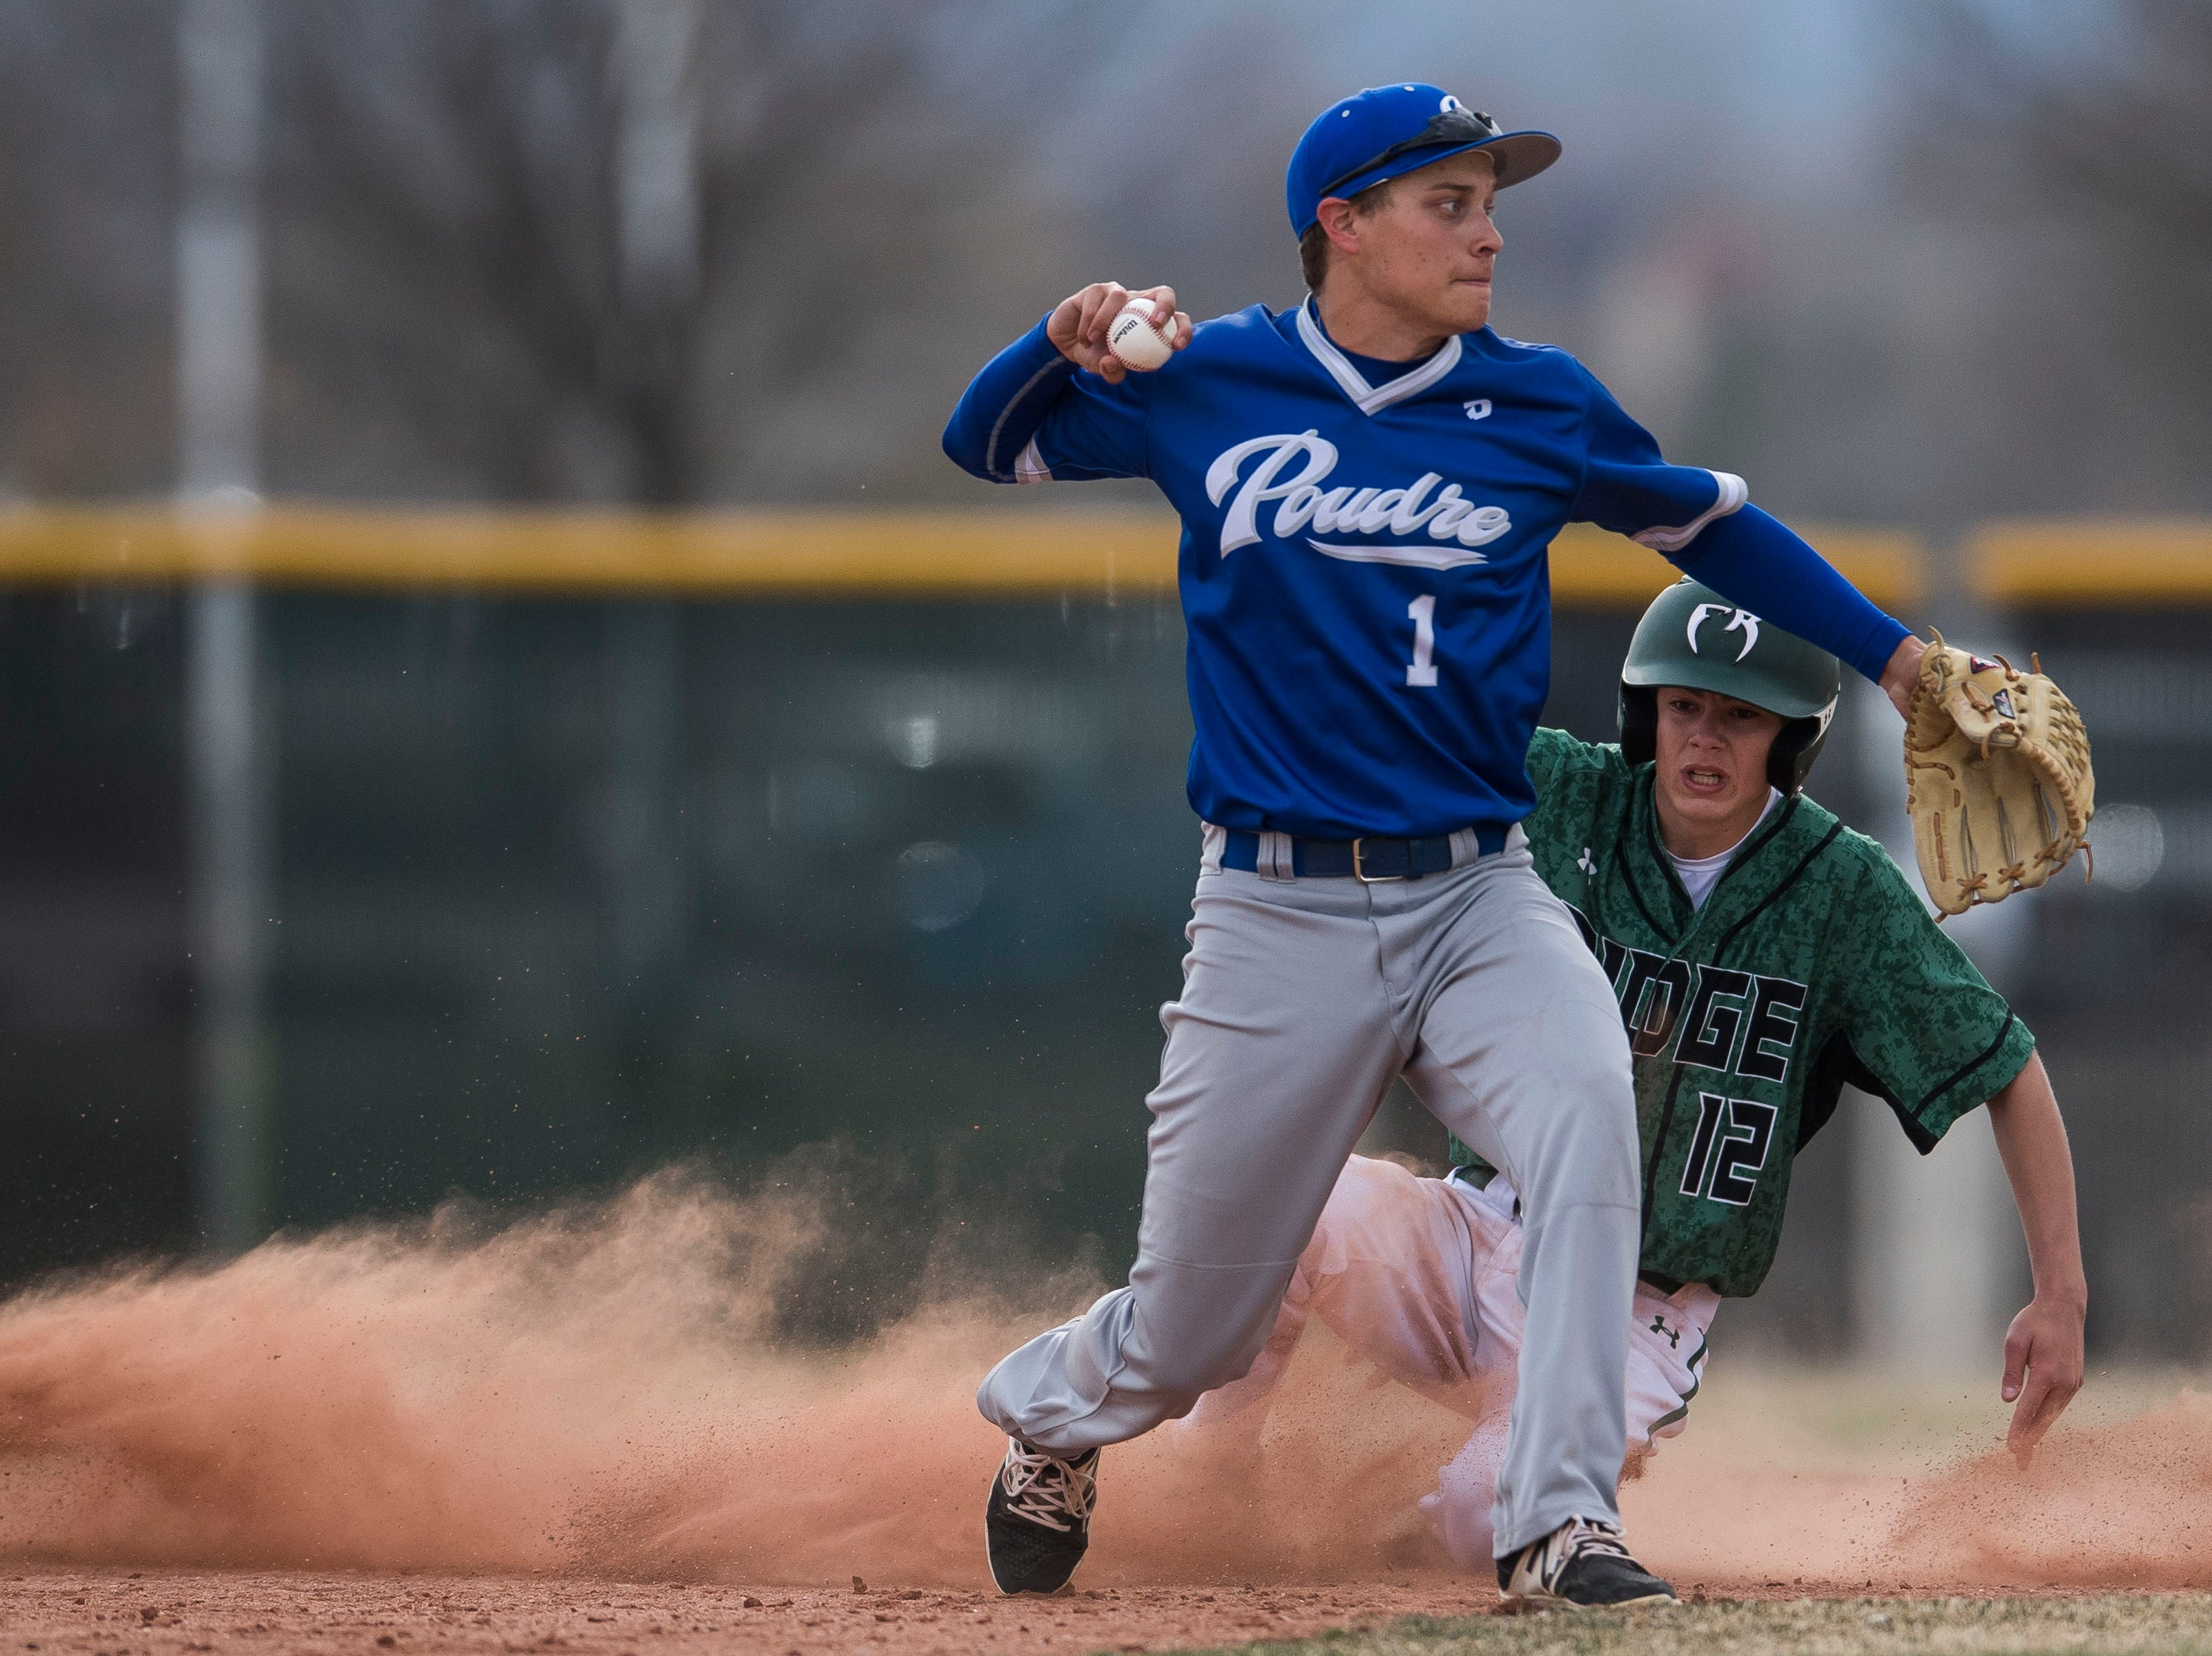 Poudre High School second baseman Lee McKinney (1) pulls down the double play after forcing out Fossil Ridge High School runner Ridge Bowolick (12) at second on Wednesday, April 3, 2019, at Fossil Ridge High School in Fort Collins, Colo.